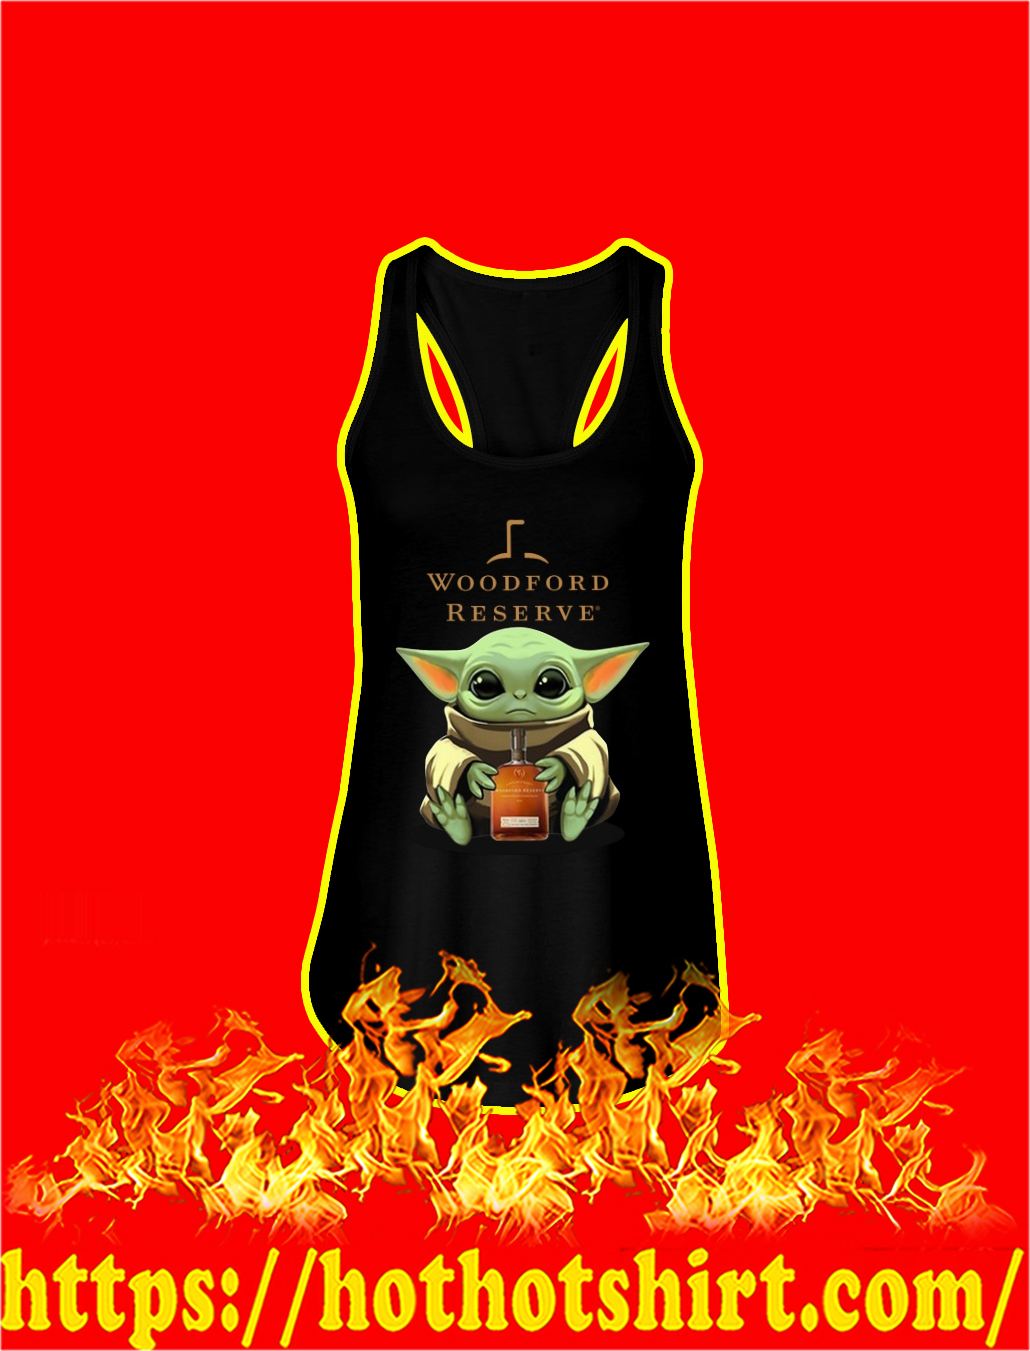 Baby Yoda Hug Woodford Reserve tank top